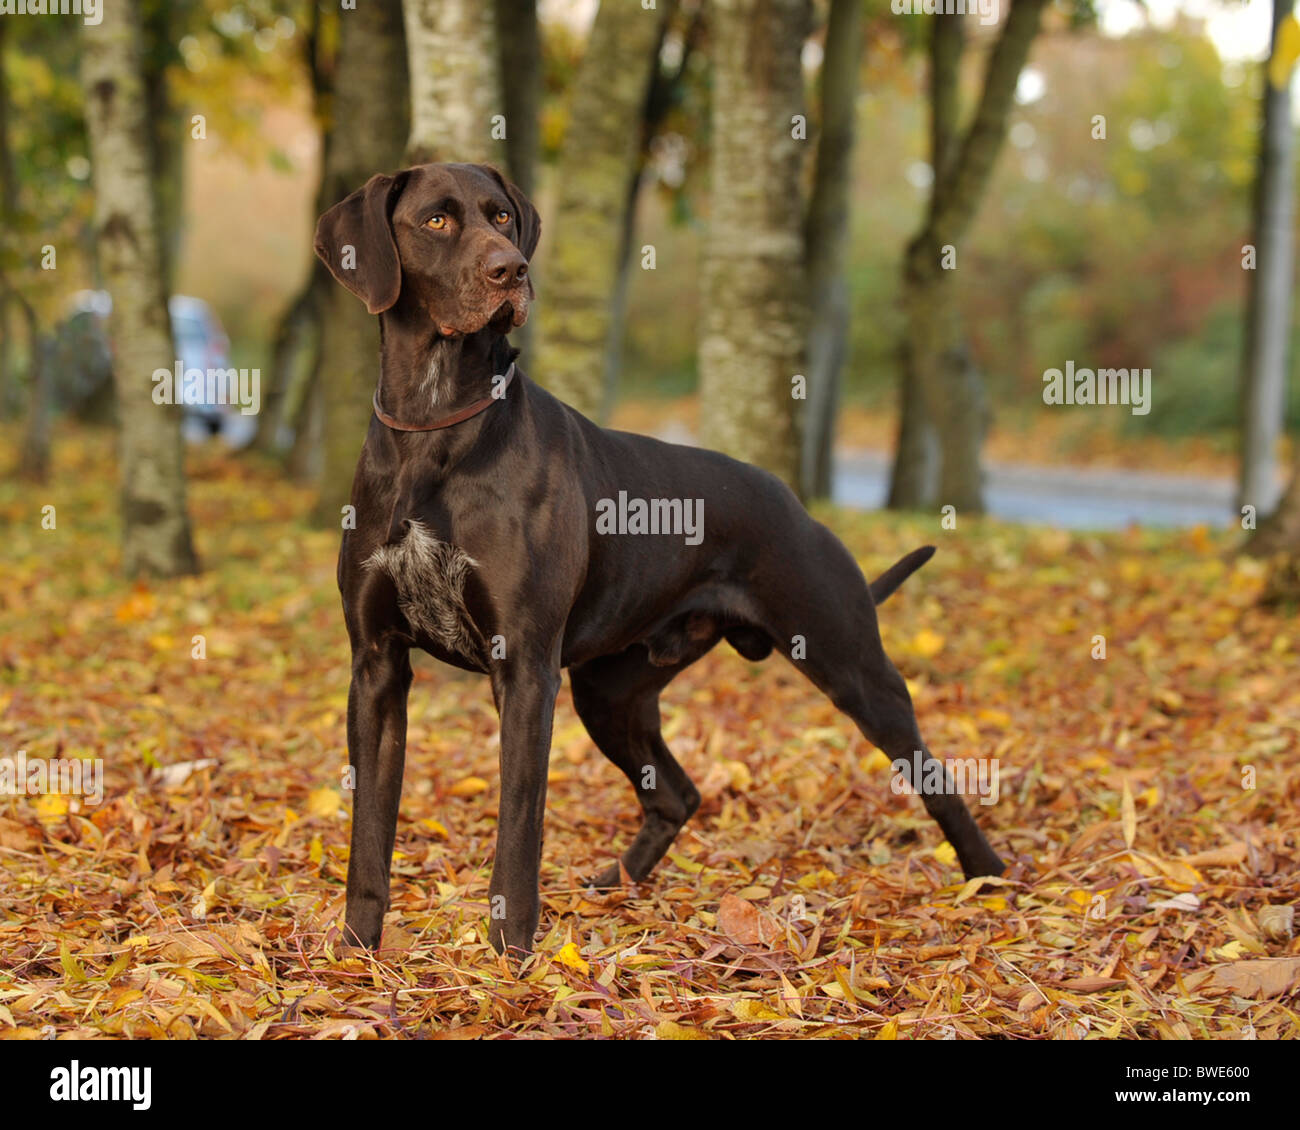 german shorthaired pointer dog standing in woodland in autumn - Stock Image